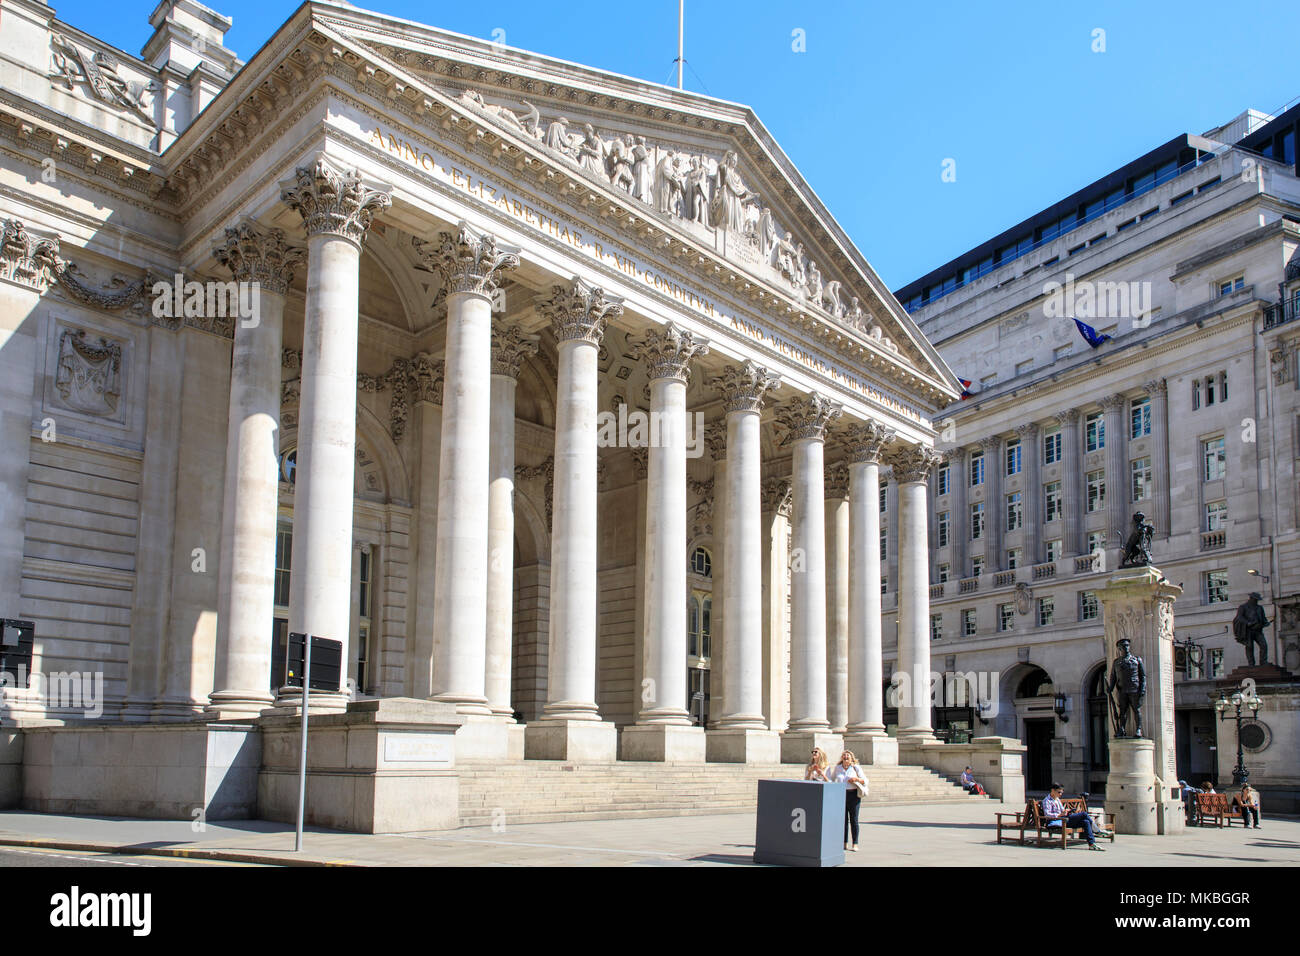 Royal Exchange in the City of London. - Stock Image